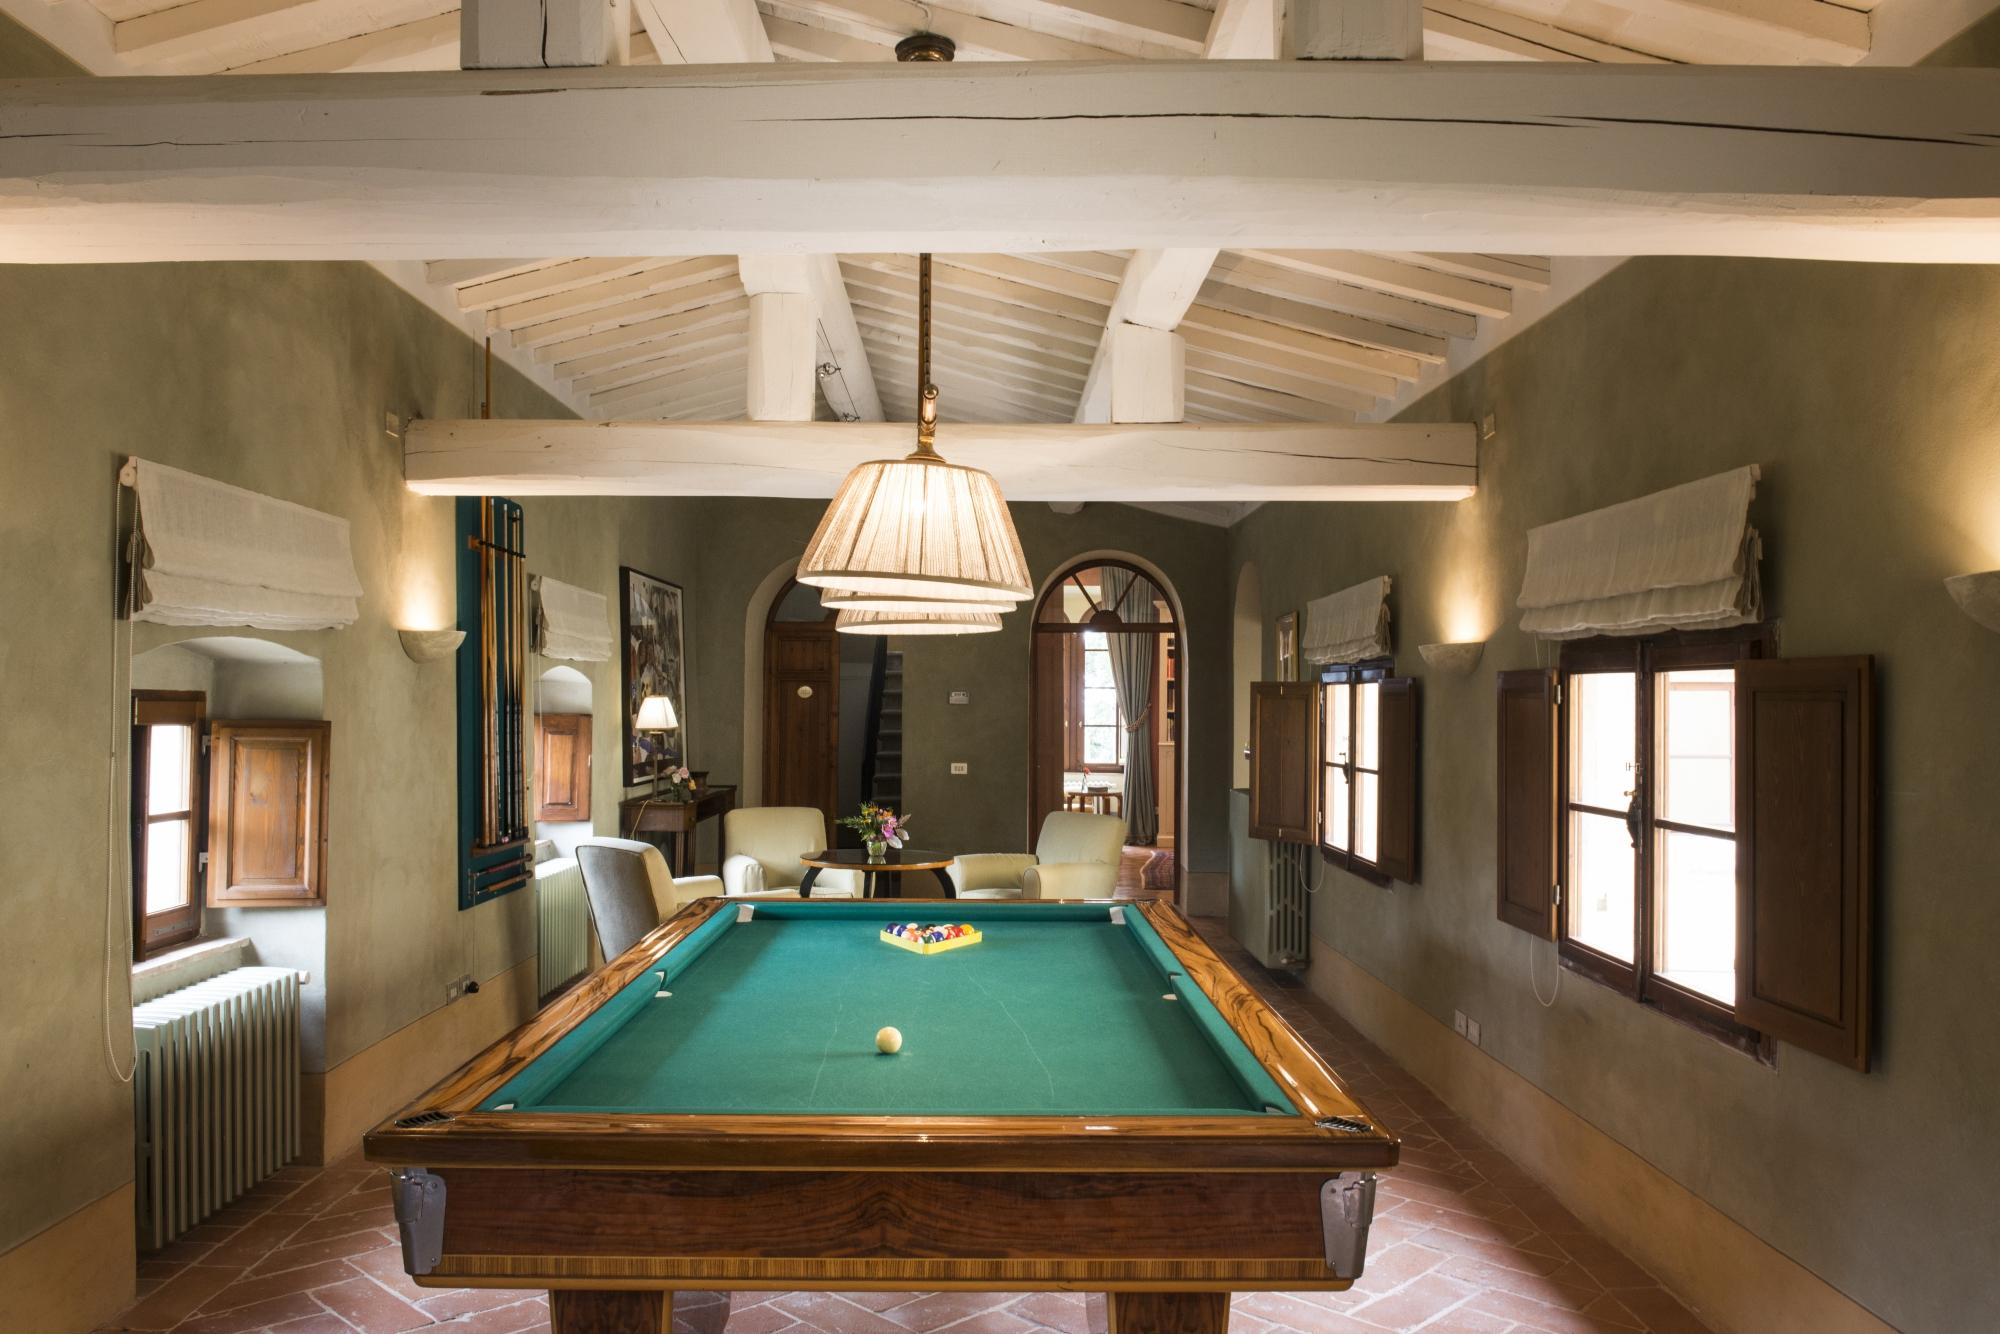 Borgo Pignano Pool Table